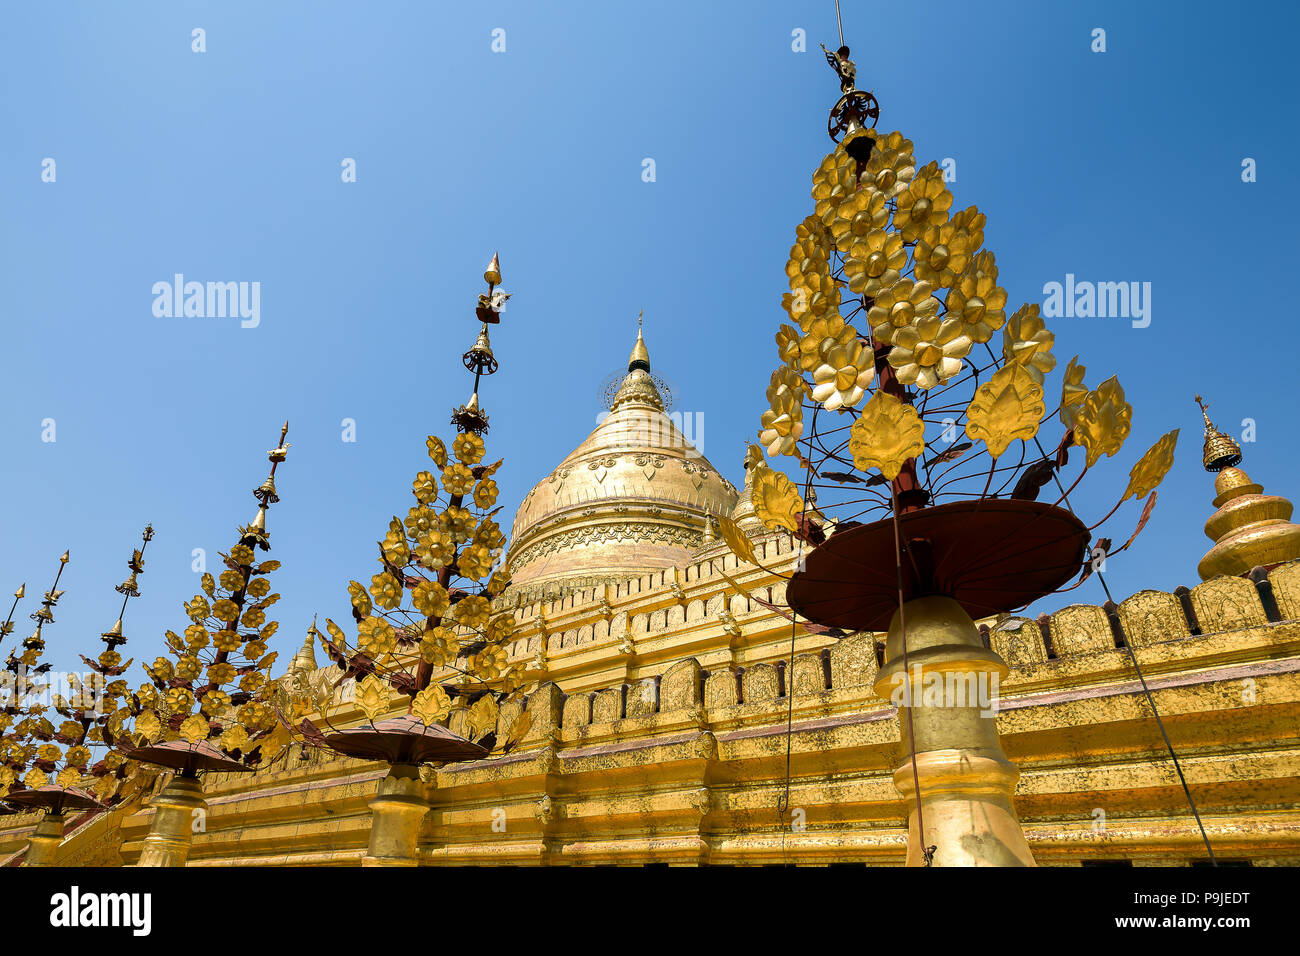 The Shwezigon Pagoda or Shwezigon Paya is a Buddhist temple located in Nyaung-U, a town in Myanmar. - Stock Image